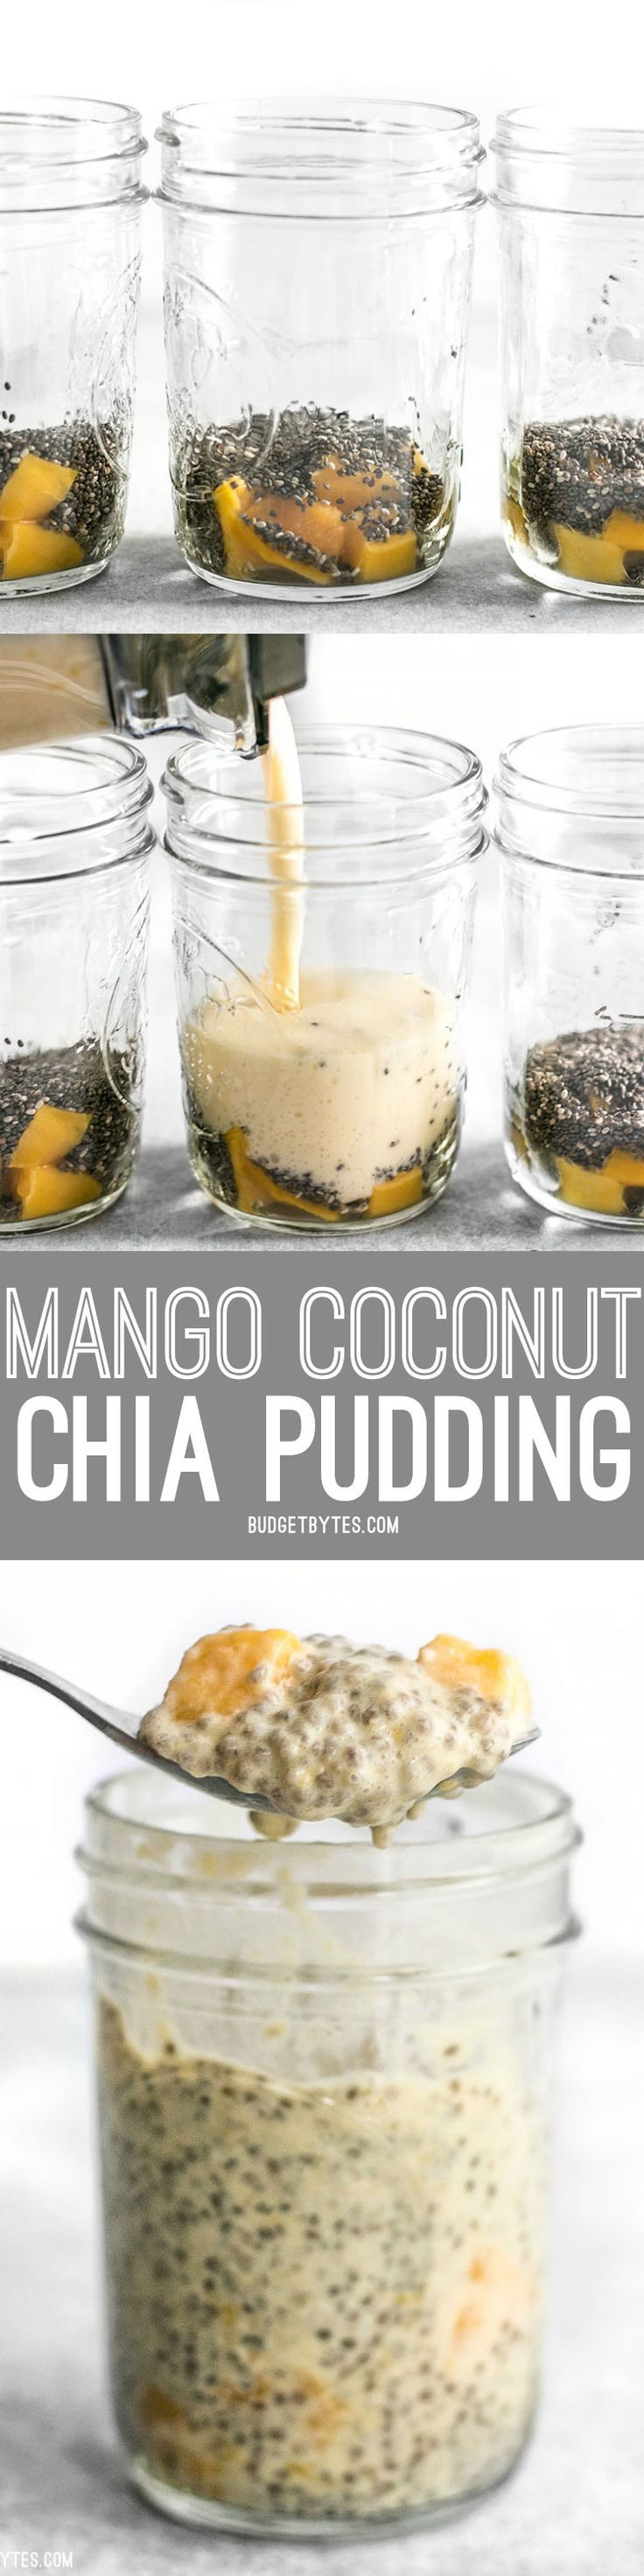 These Mango Coconut Chia Pudding cups are a fast and easy make-ahead breakfast with tons of fiber and protein.